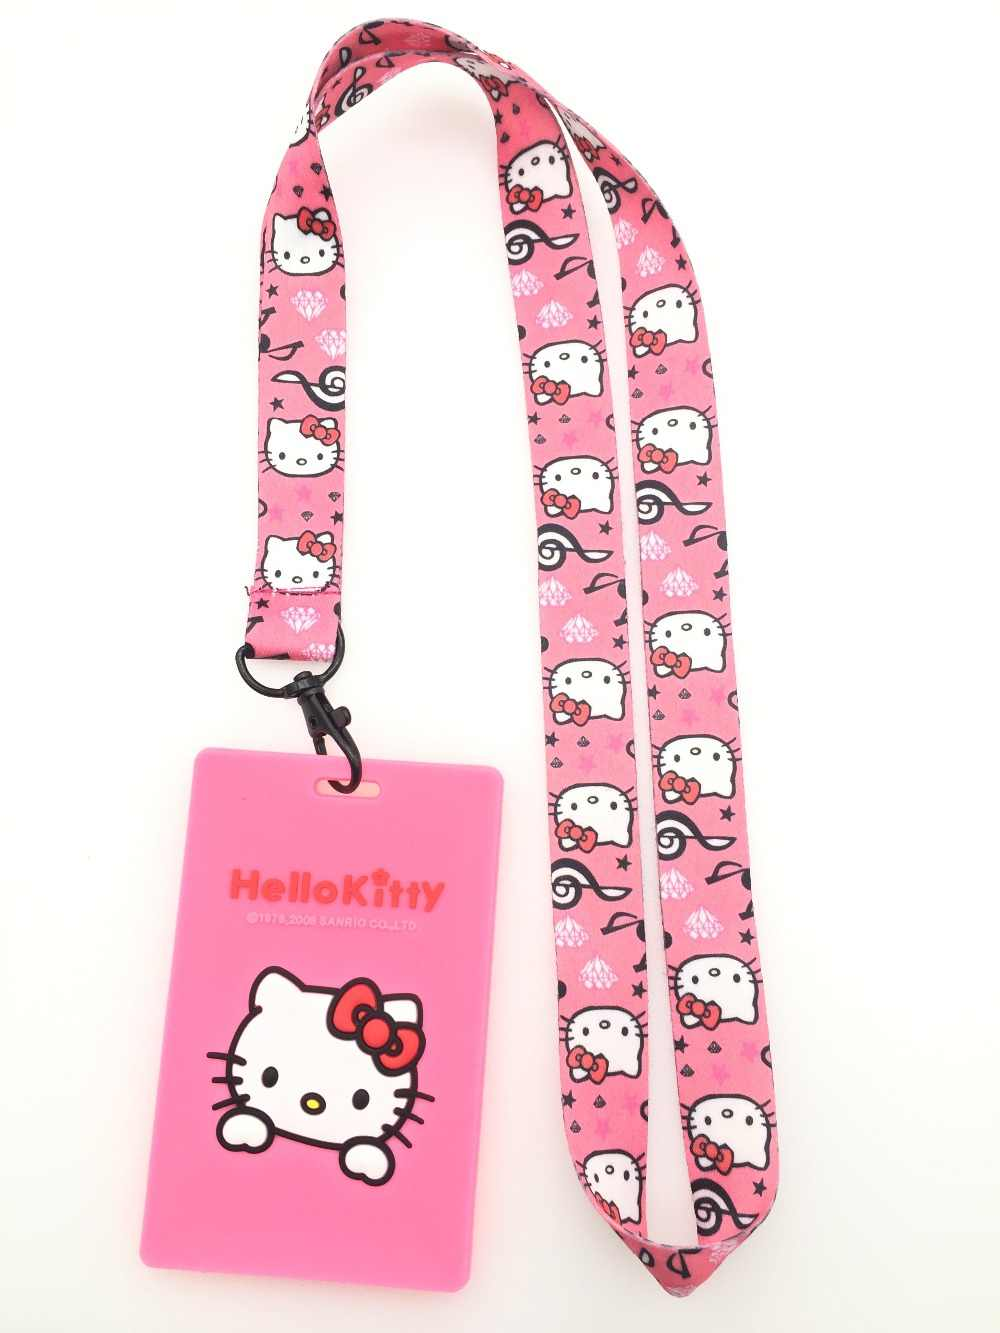 e4693cd56 Retail 1 pcs pink new anime hello kitty Card Holder Identity Badge with Lanyard  Neck Strap